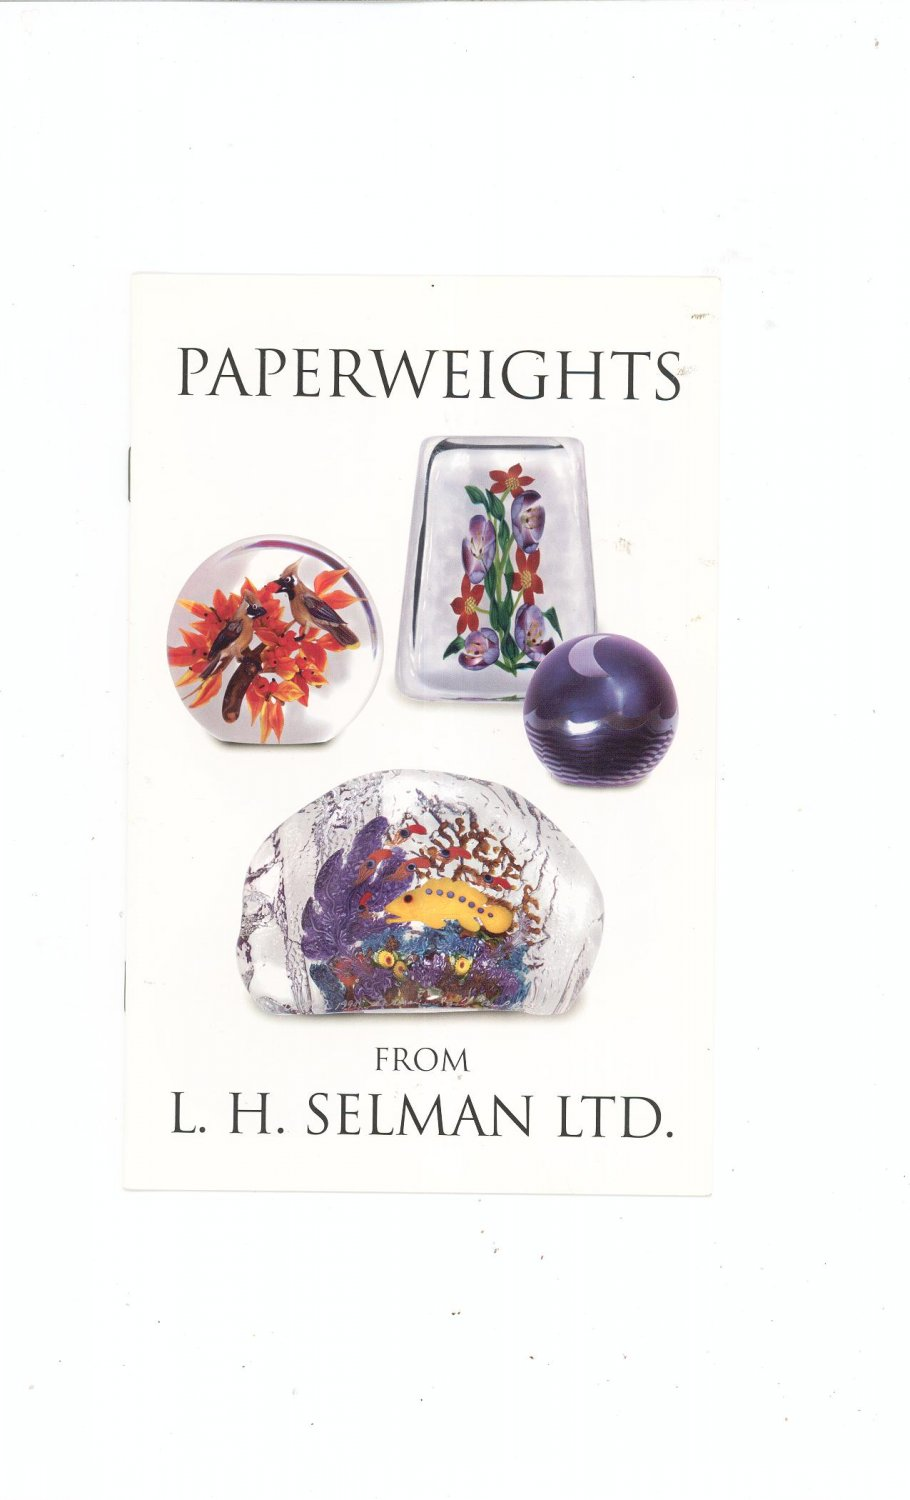 Paperweights From  Catalog / Brochure by L. H. Selman Ltd. Paperweights